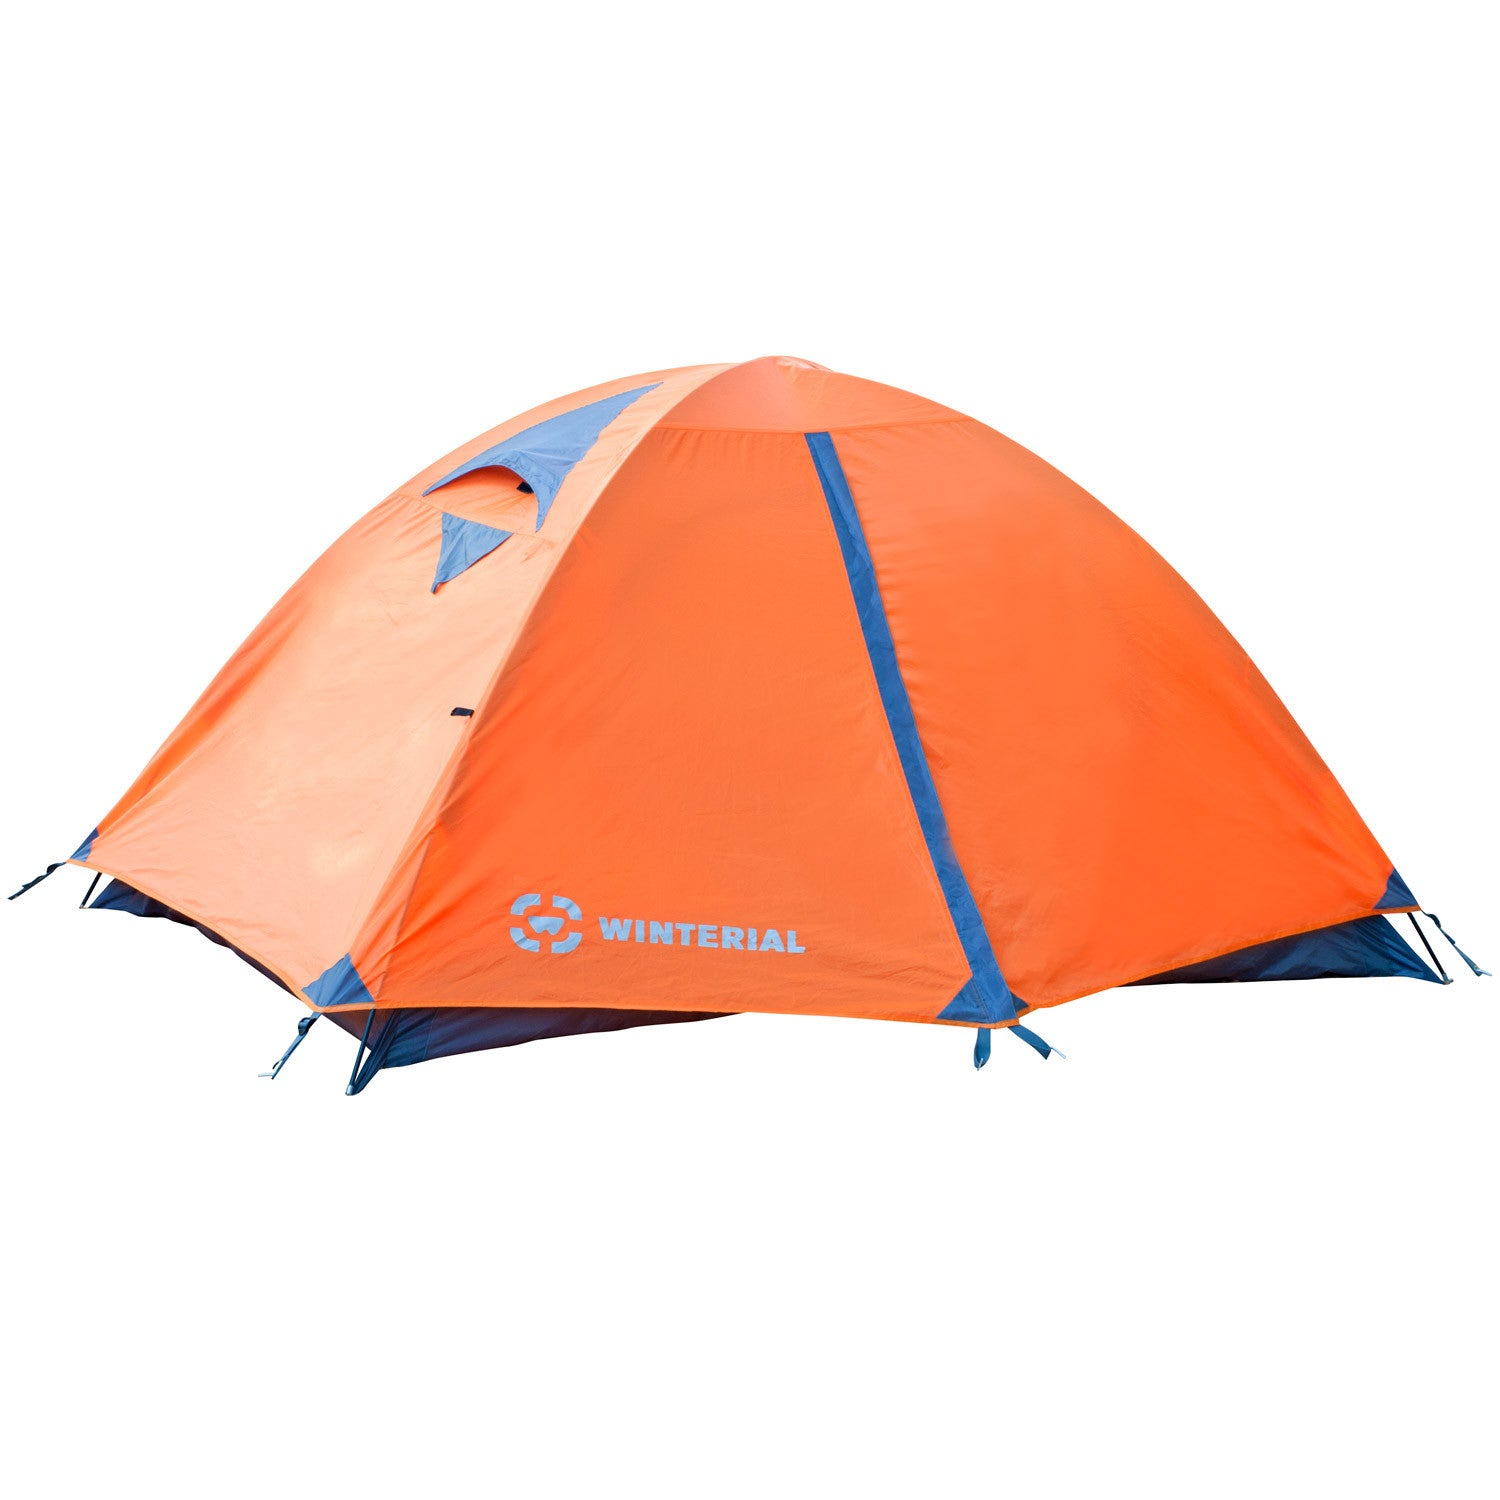 ... 2 person c&ing tent for backpacking hiking or c&ing. ...  sc 1 st  Winterial.com : 1 2 person tent - memphite.com